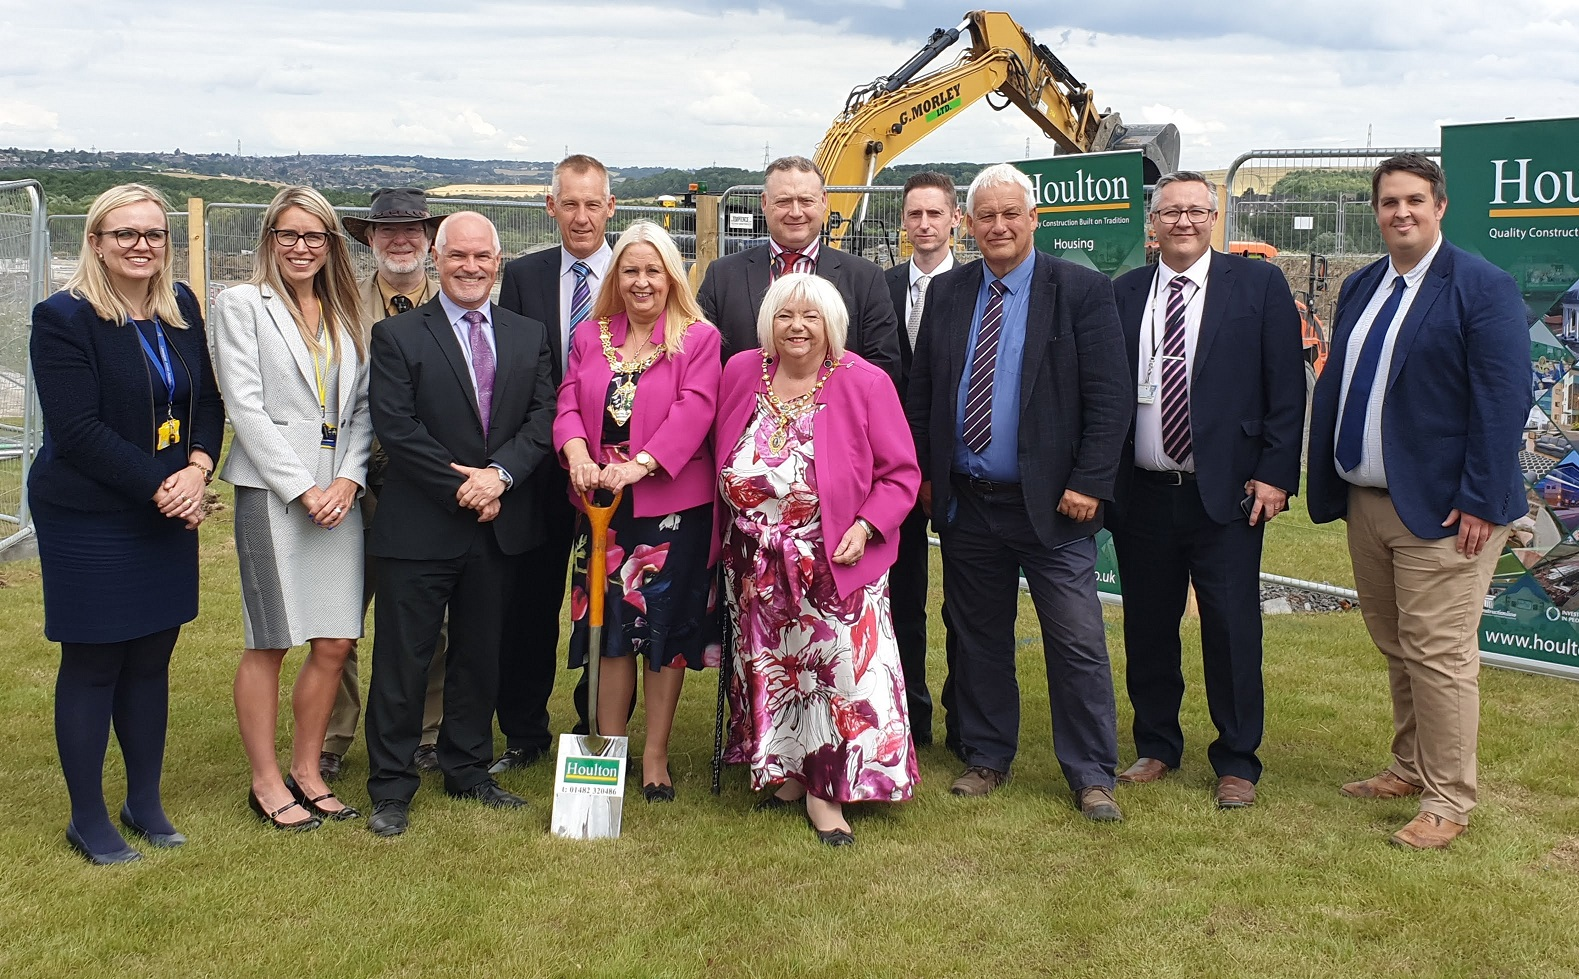 From left: Rebecca Scutt, assistant CEO of the Aston Community Education Trust; Cathryn Keeton, principal designate of Waverley Junior Academy; Councillor Bob Watson, council member for Rother Vale; Andrew Kingston, managing director of Houlton; John Barton, chair of ACET; the Mayor of Rotherham, Councillor Jenny Andrews; Paul Smith, head of asset management at Rotherham Council; the Mayoress of Rotherham, Councillor Jeanette Mallinder; Andrew Parry, capital projects co-ordinator at Rotherham council; Andy Watson, estates manager for ACET; Dean Fenton, Head of Service – School Planning, Admissions and Appeals at Rotherham Council and Mark Arthur, ACET asset premises manager. Penguin PR: public relations, media and communications